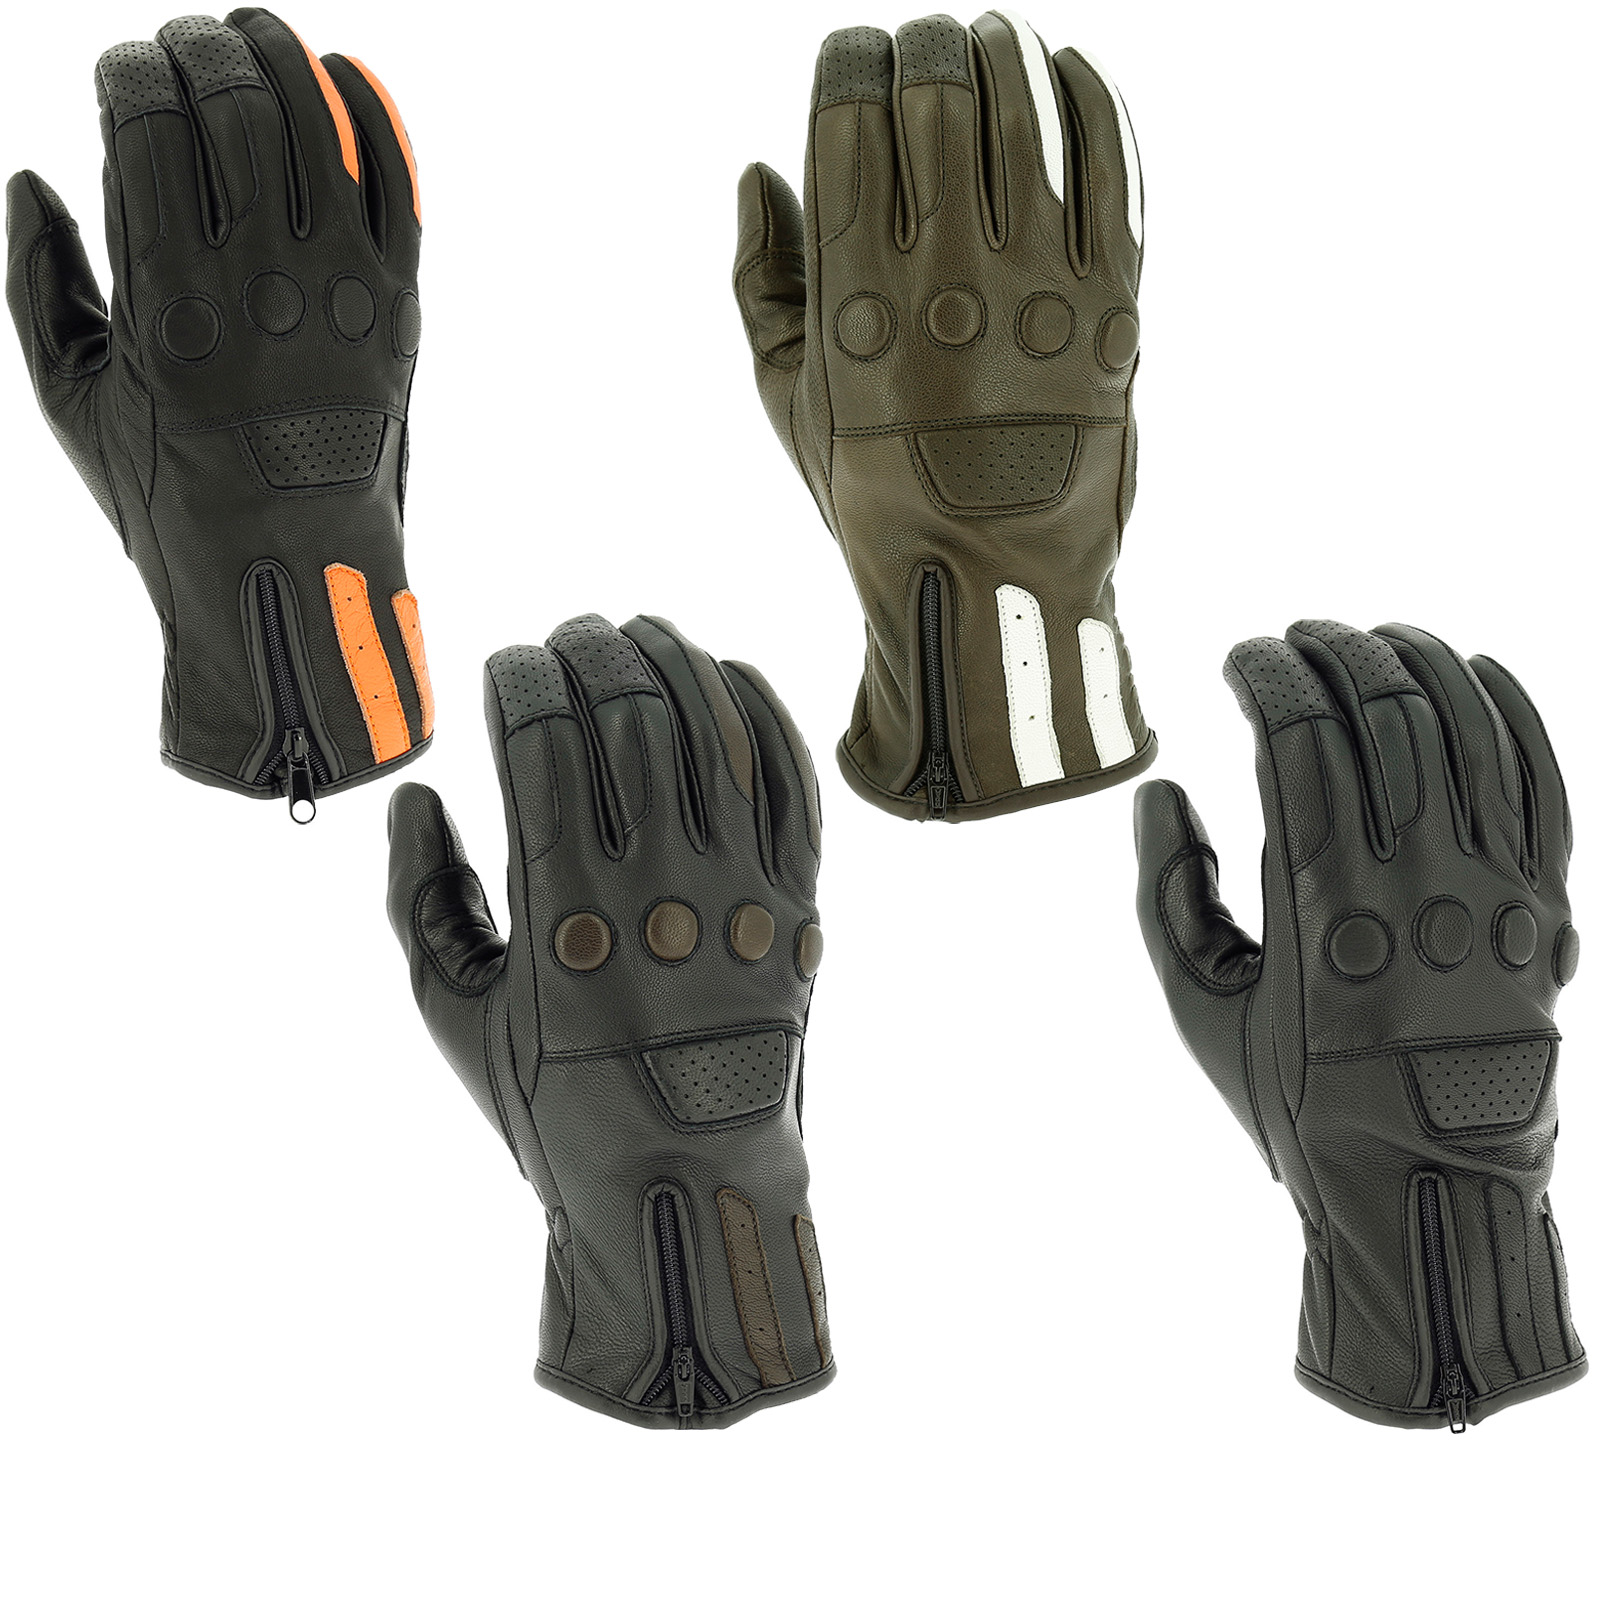 Motorcycle gloves richa - Richa Steve Leather Motorcycle Gloves